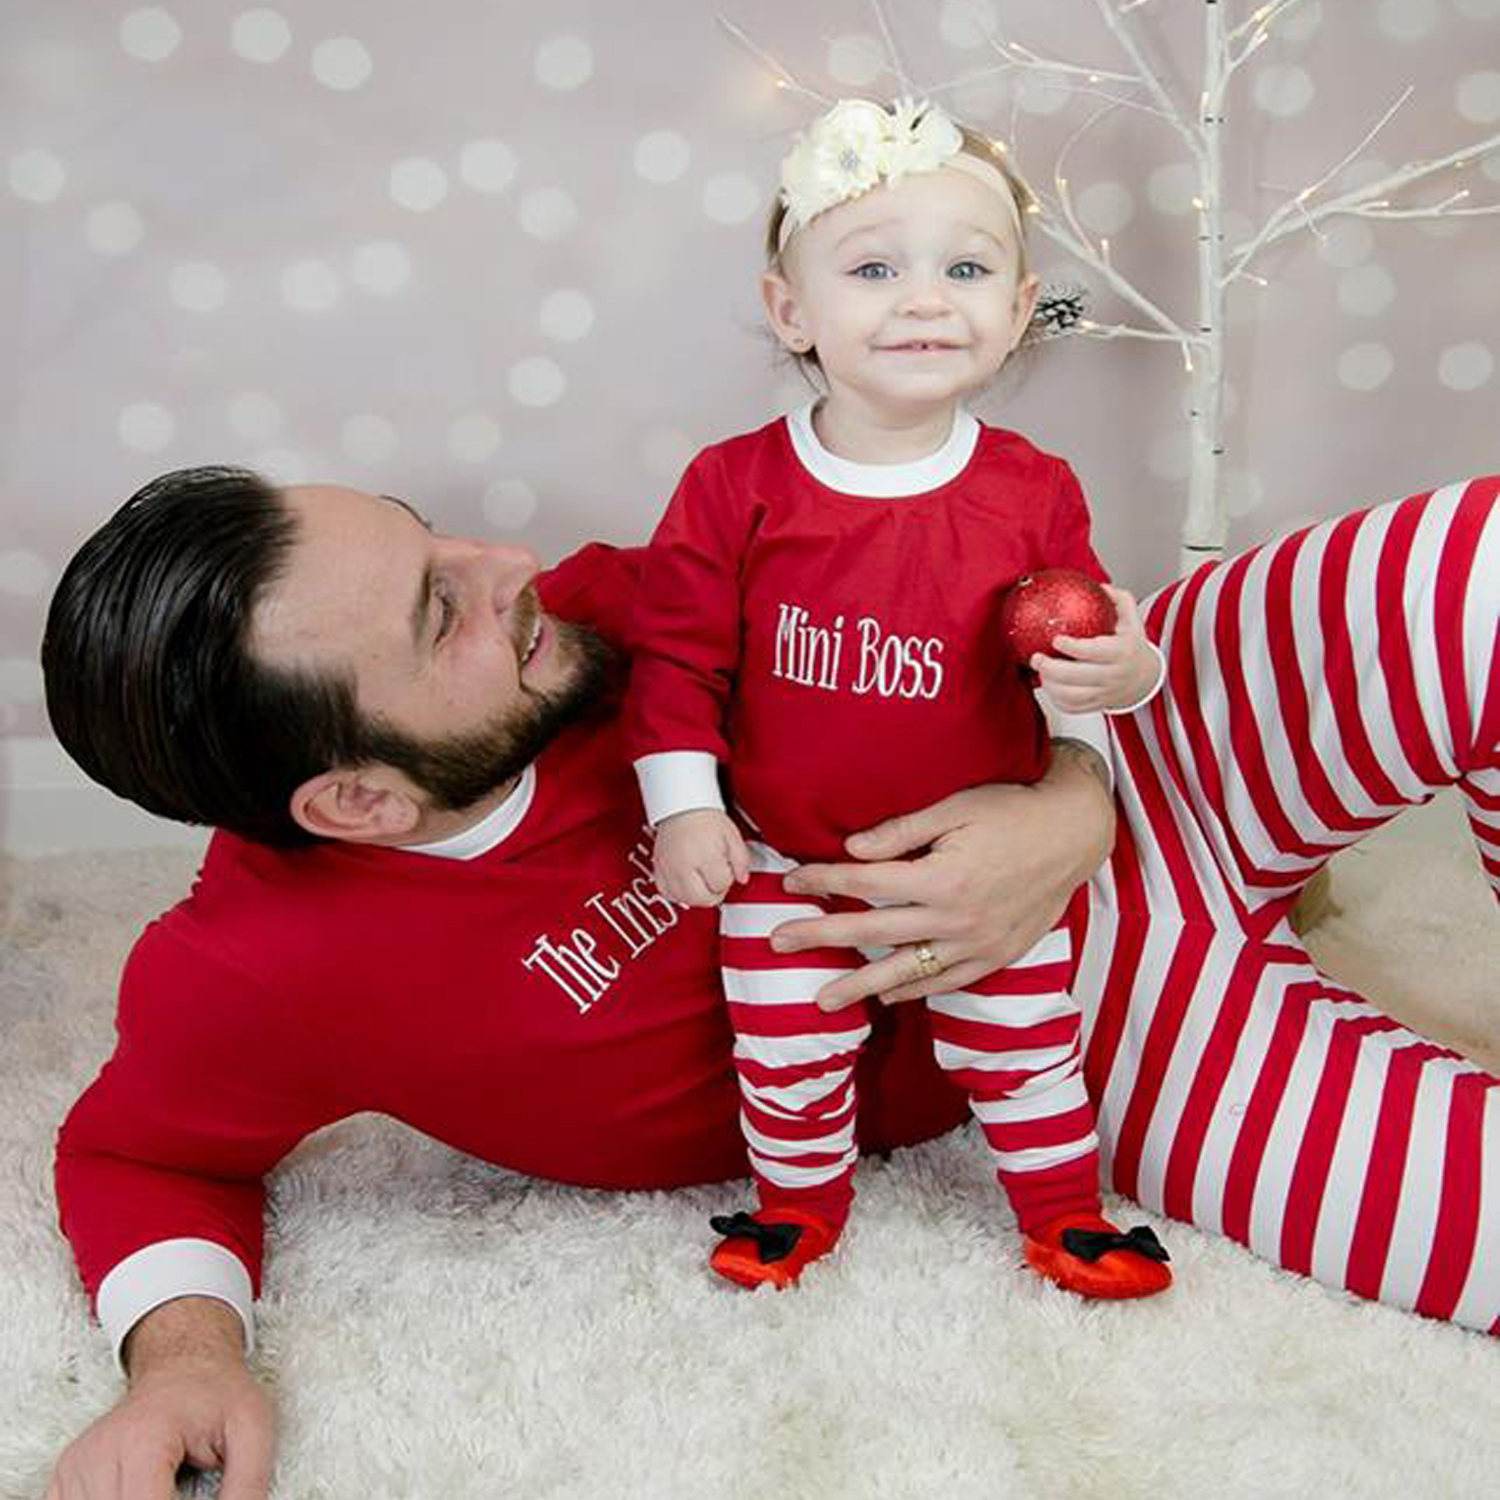 Adults & Kids Christmas & Holiday PJ's in RED Batch #4